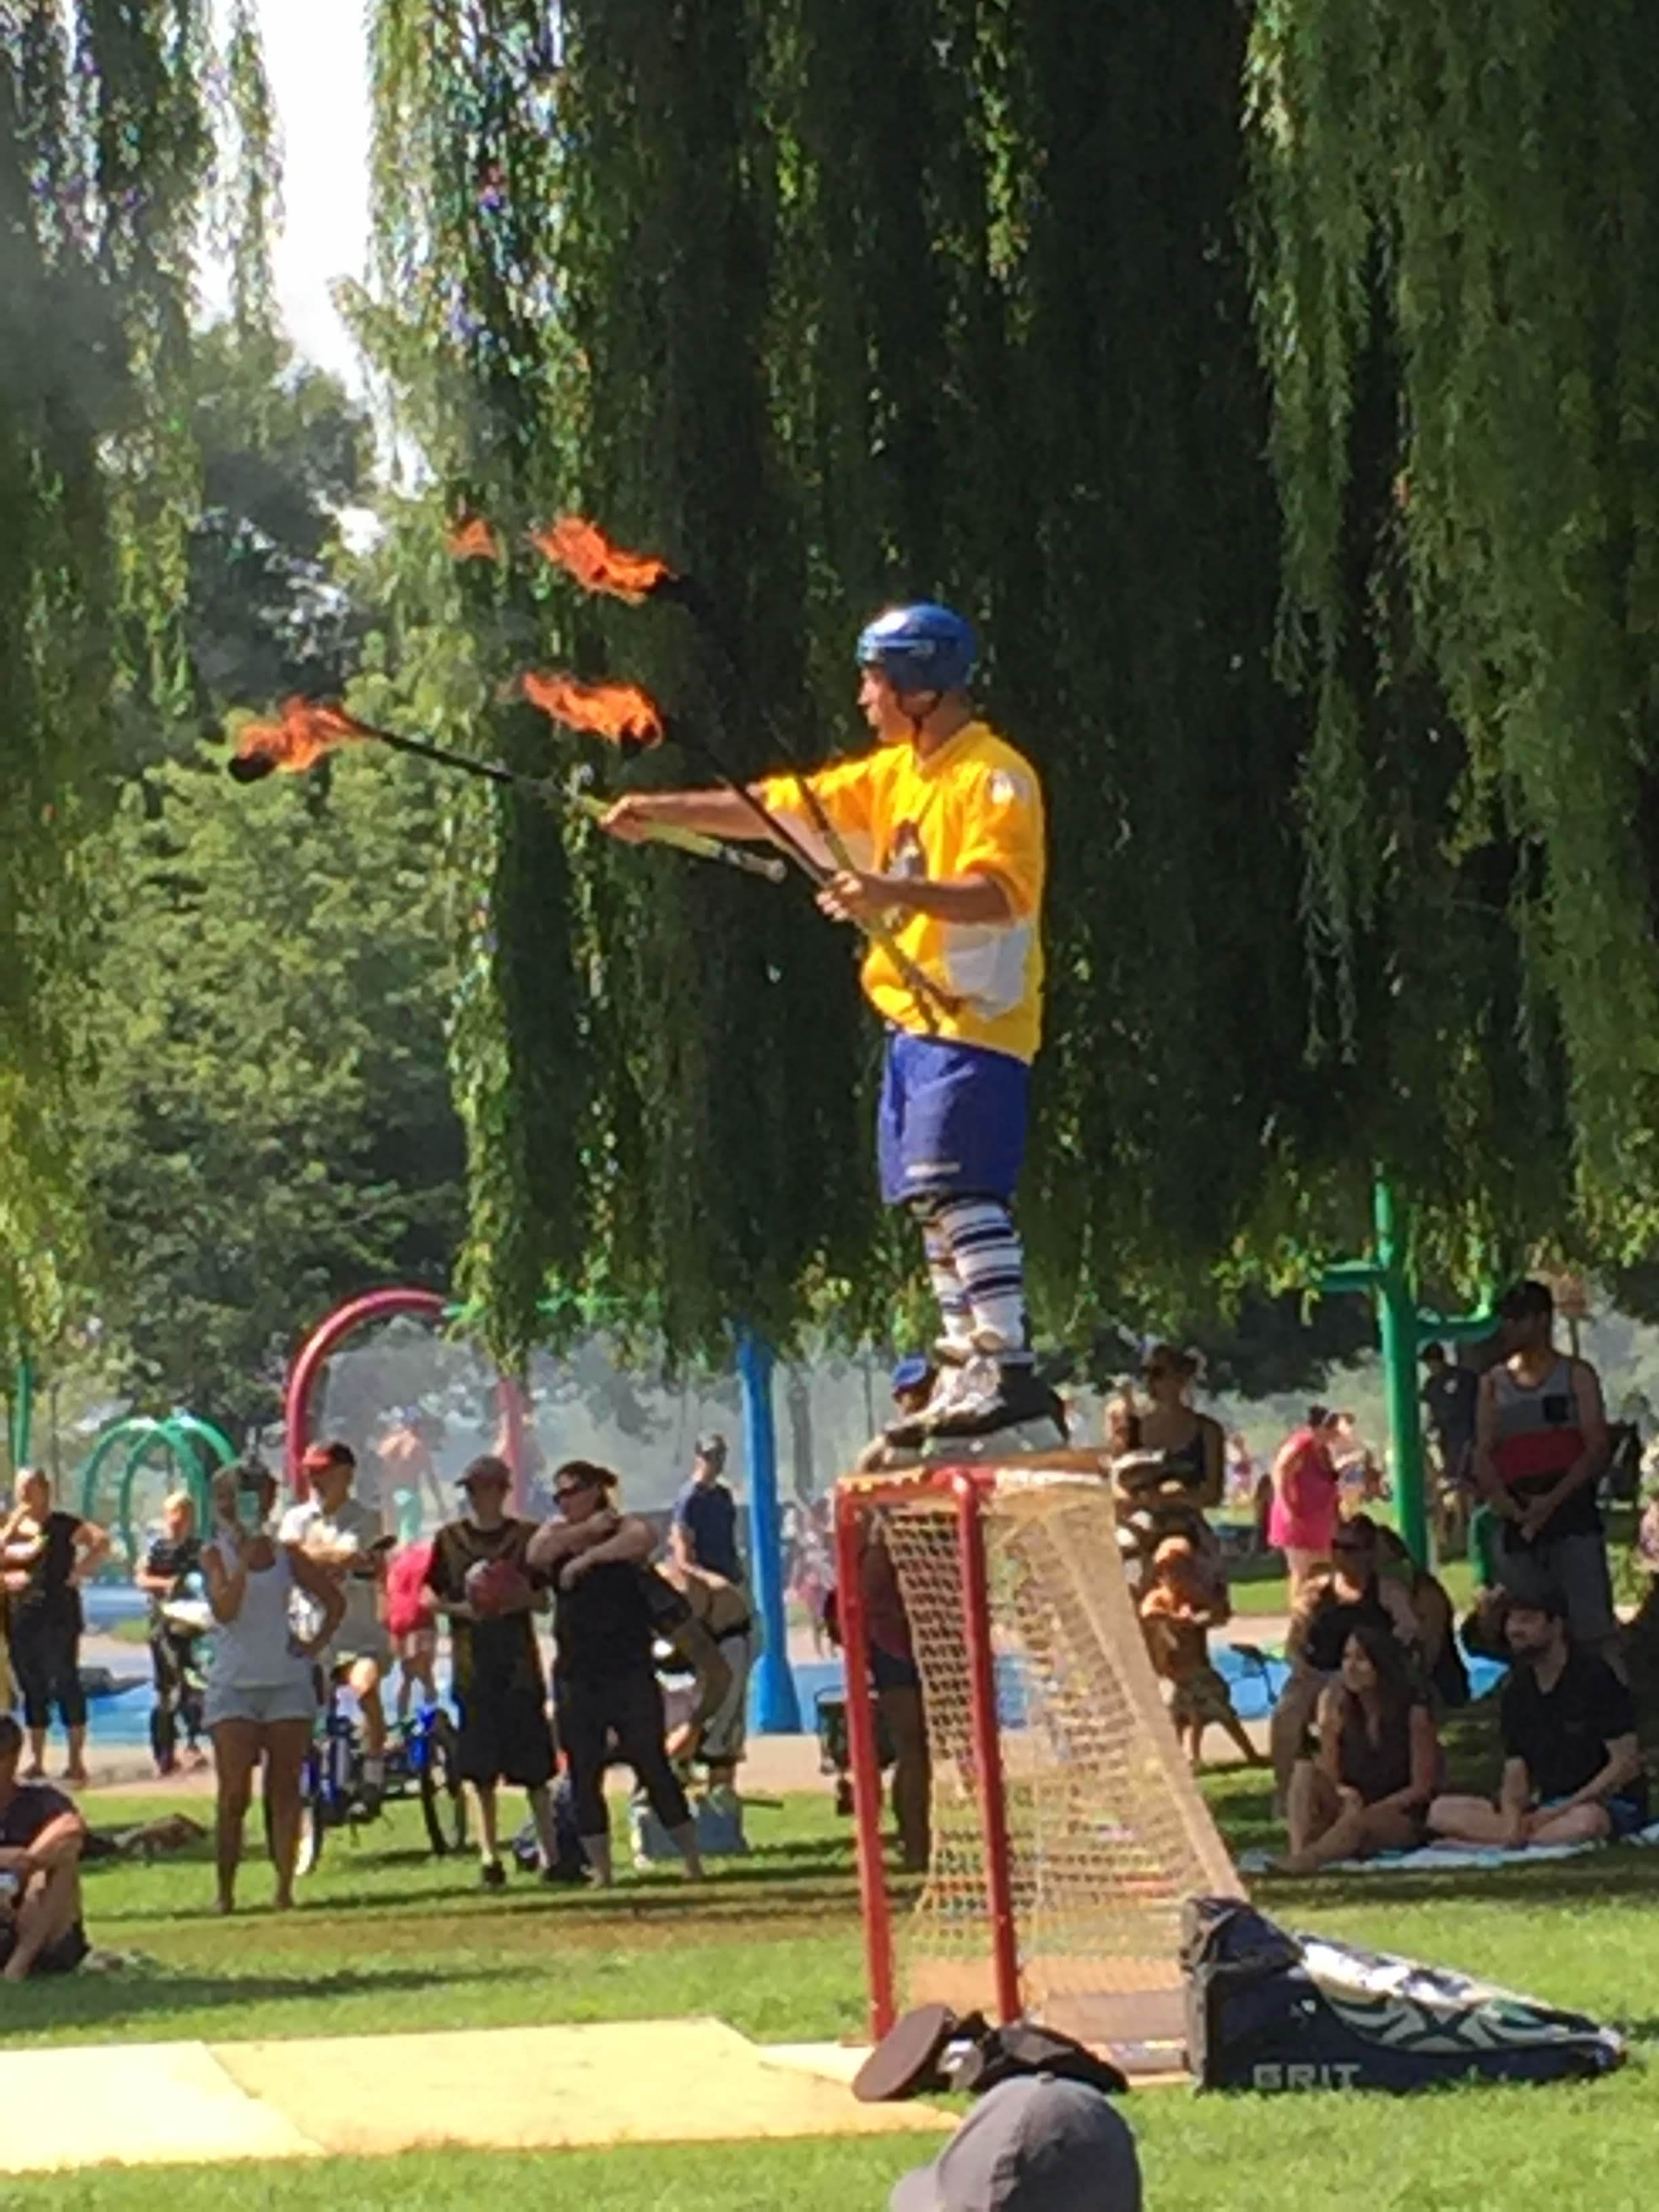 Culture takes many forms at Busker Fest